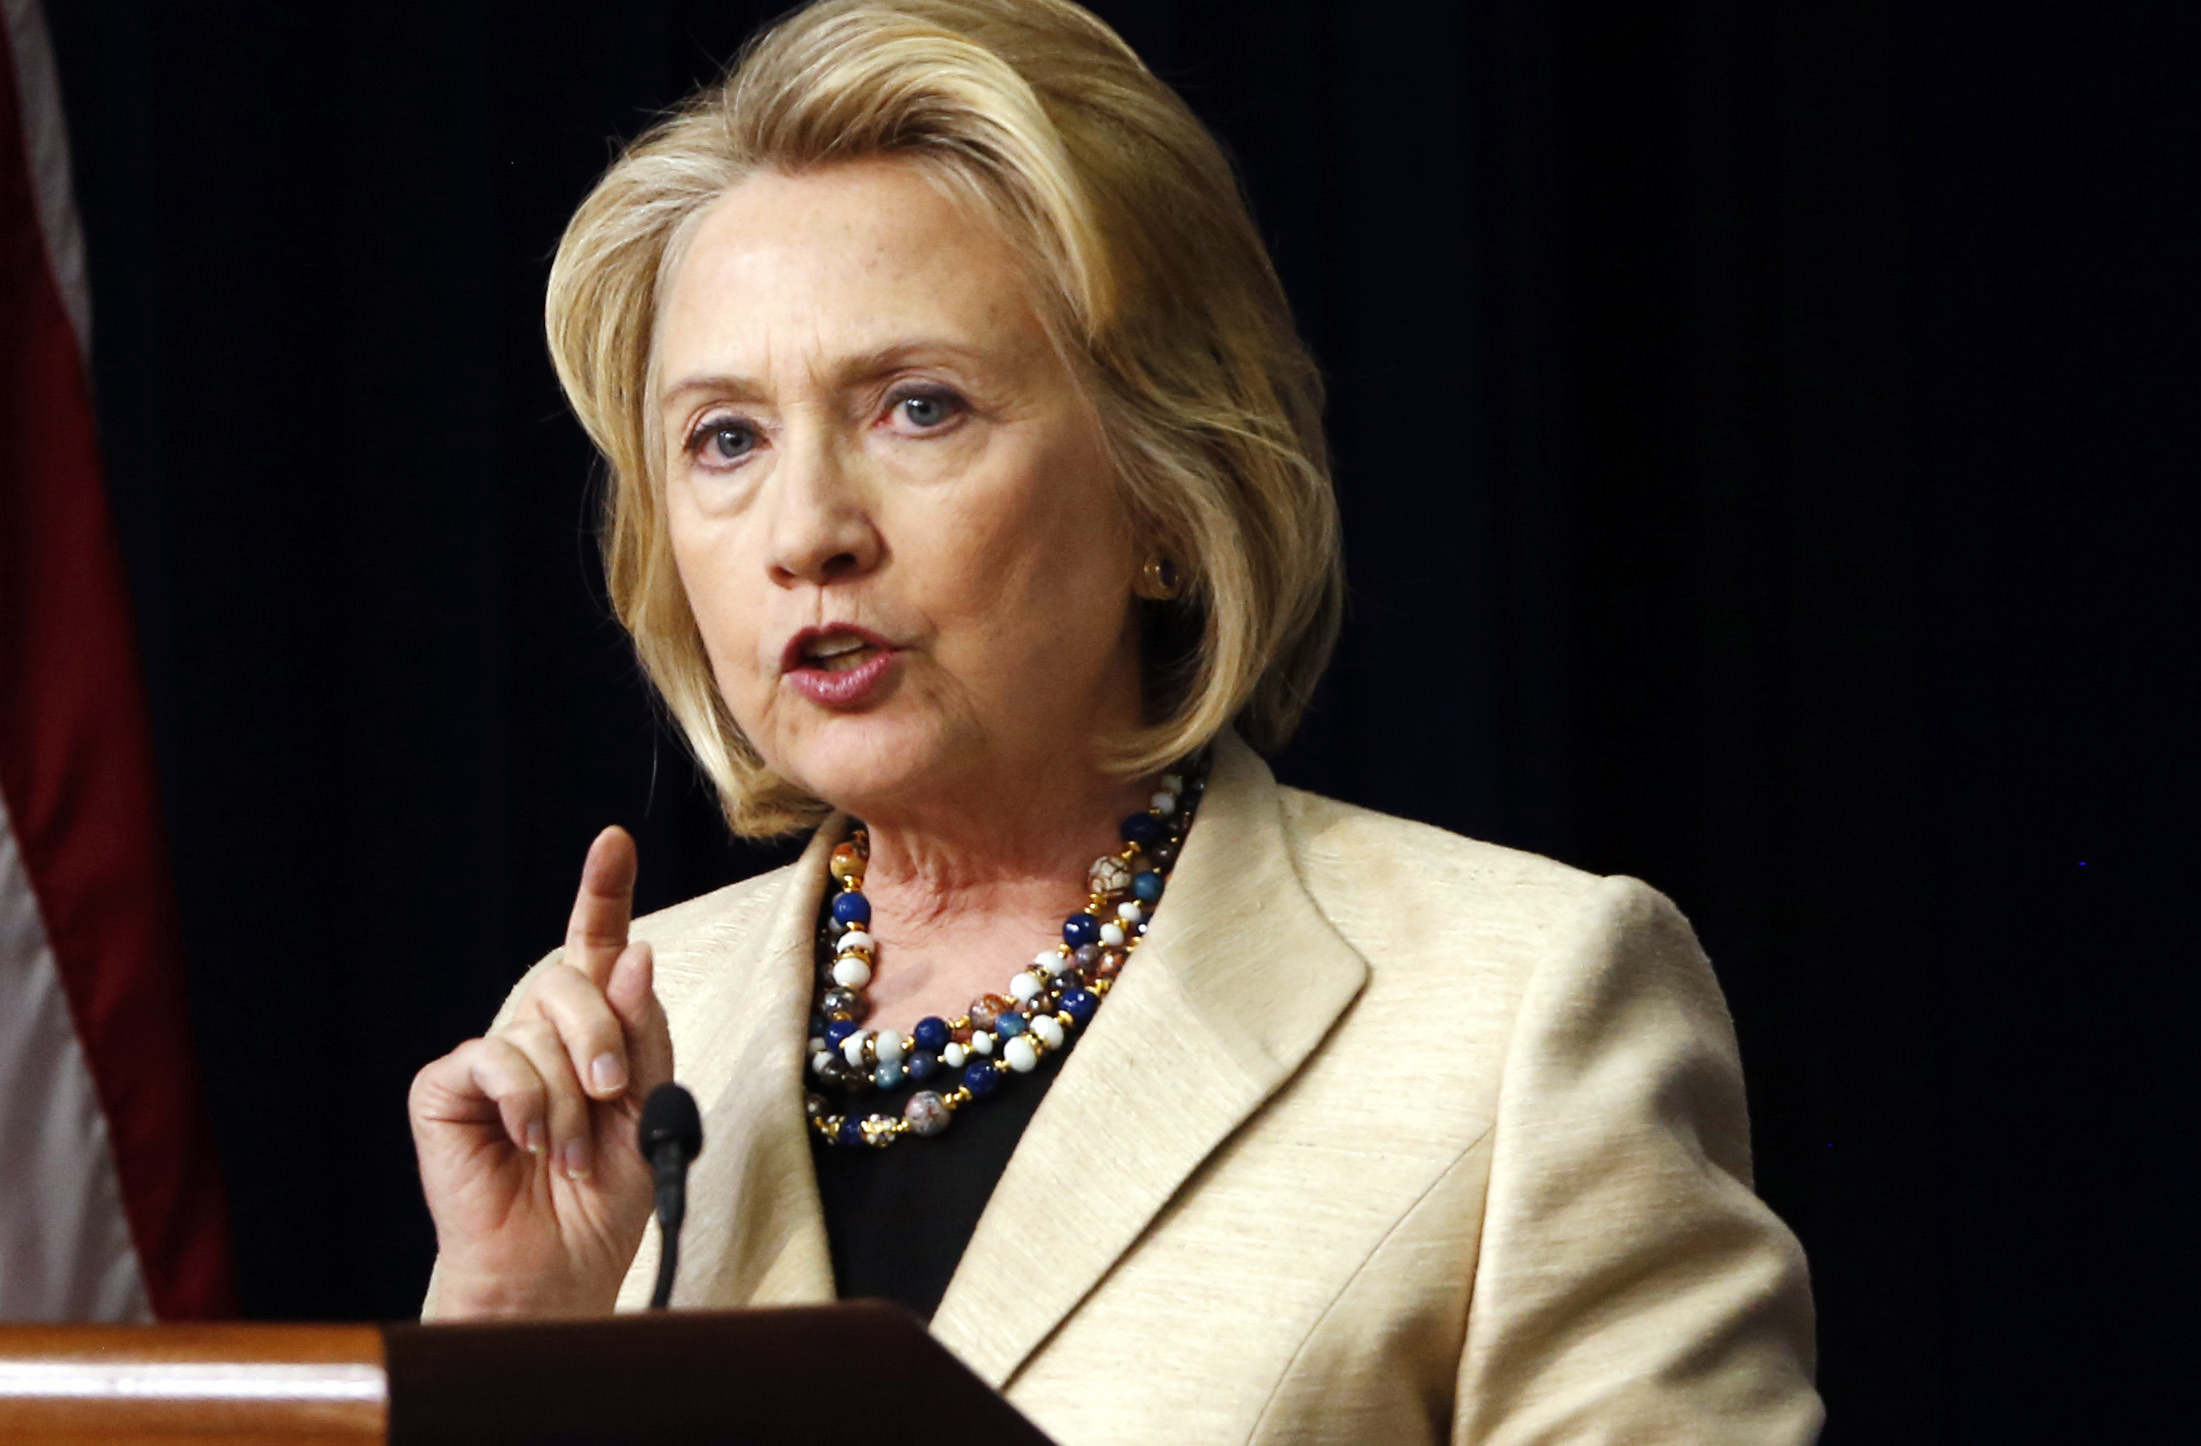 Hillary Clinton Isis Speech Quotes From Candidate Pro